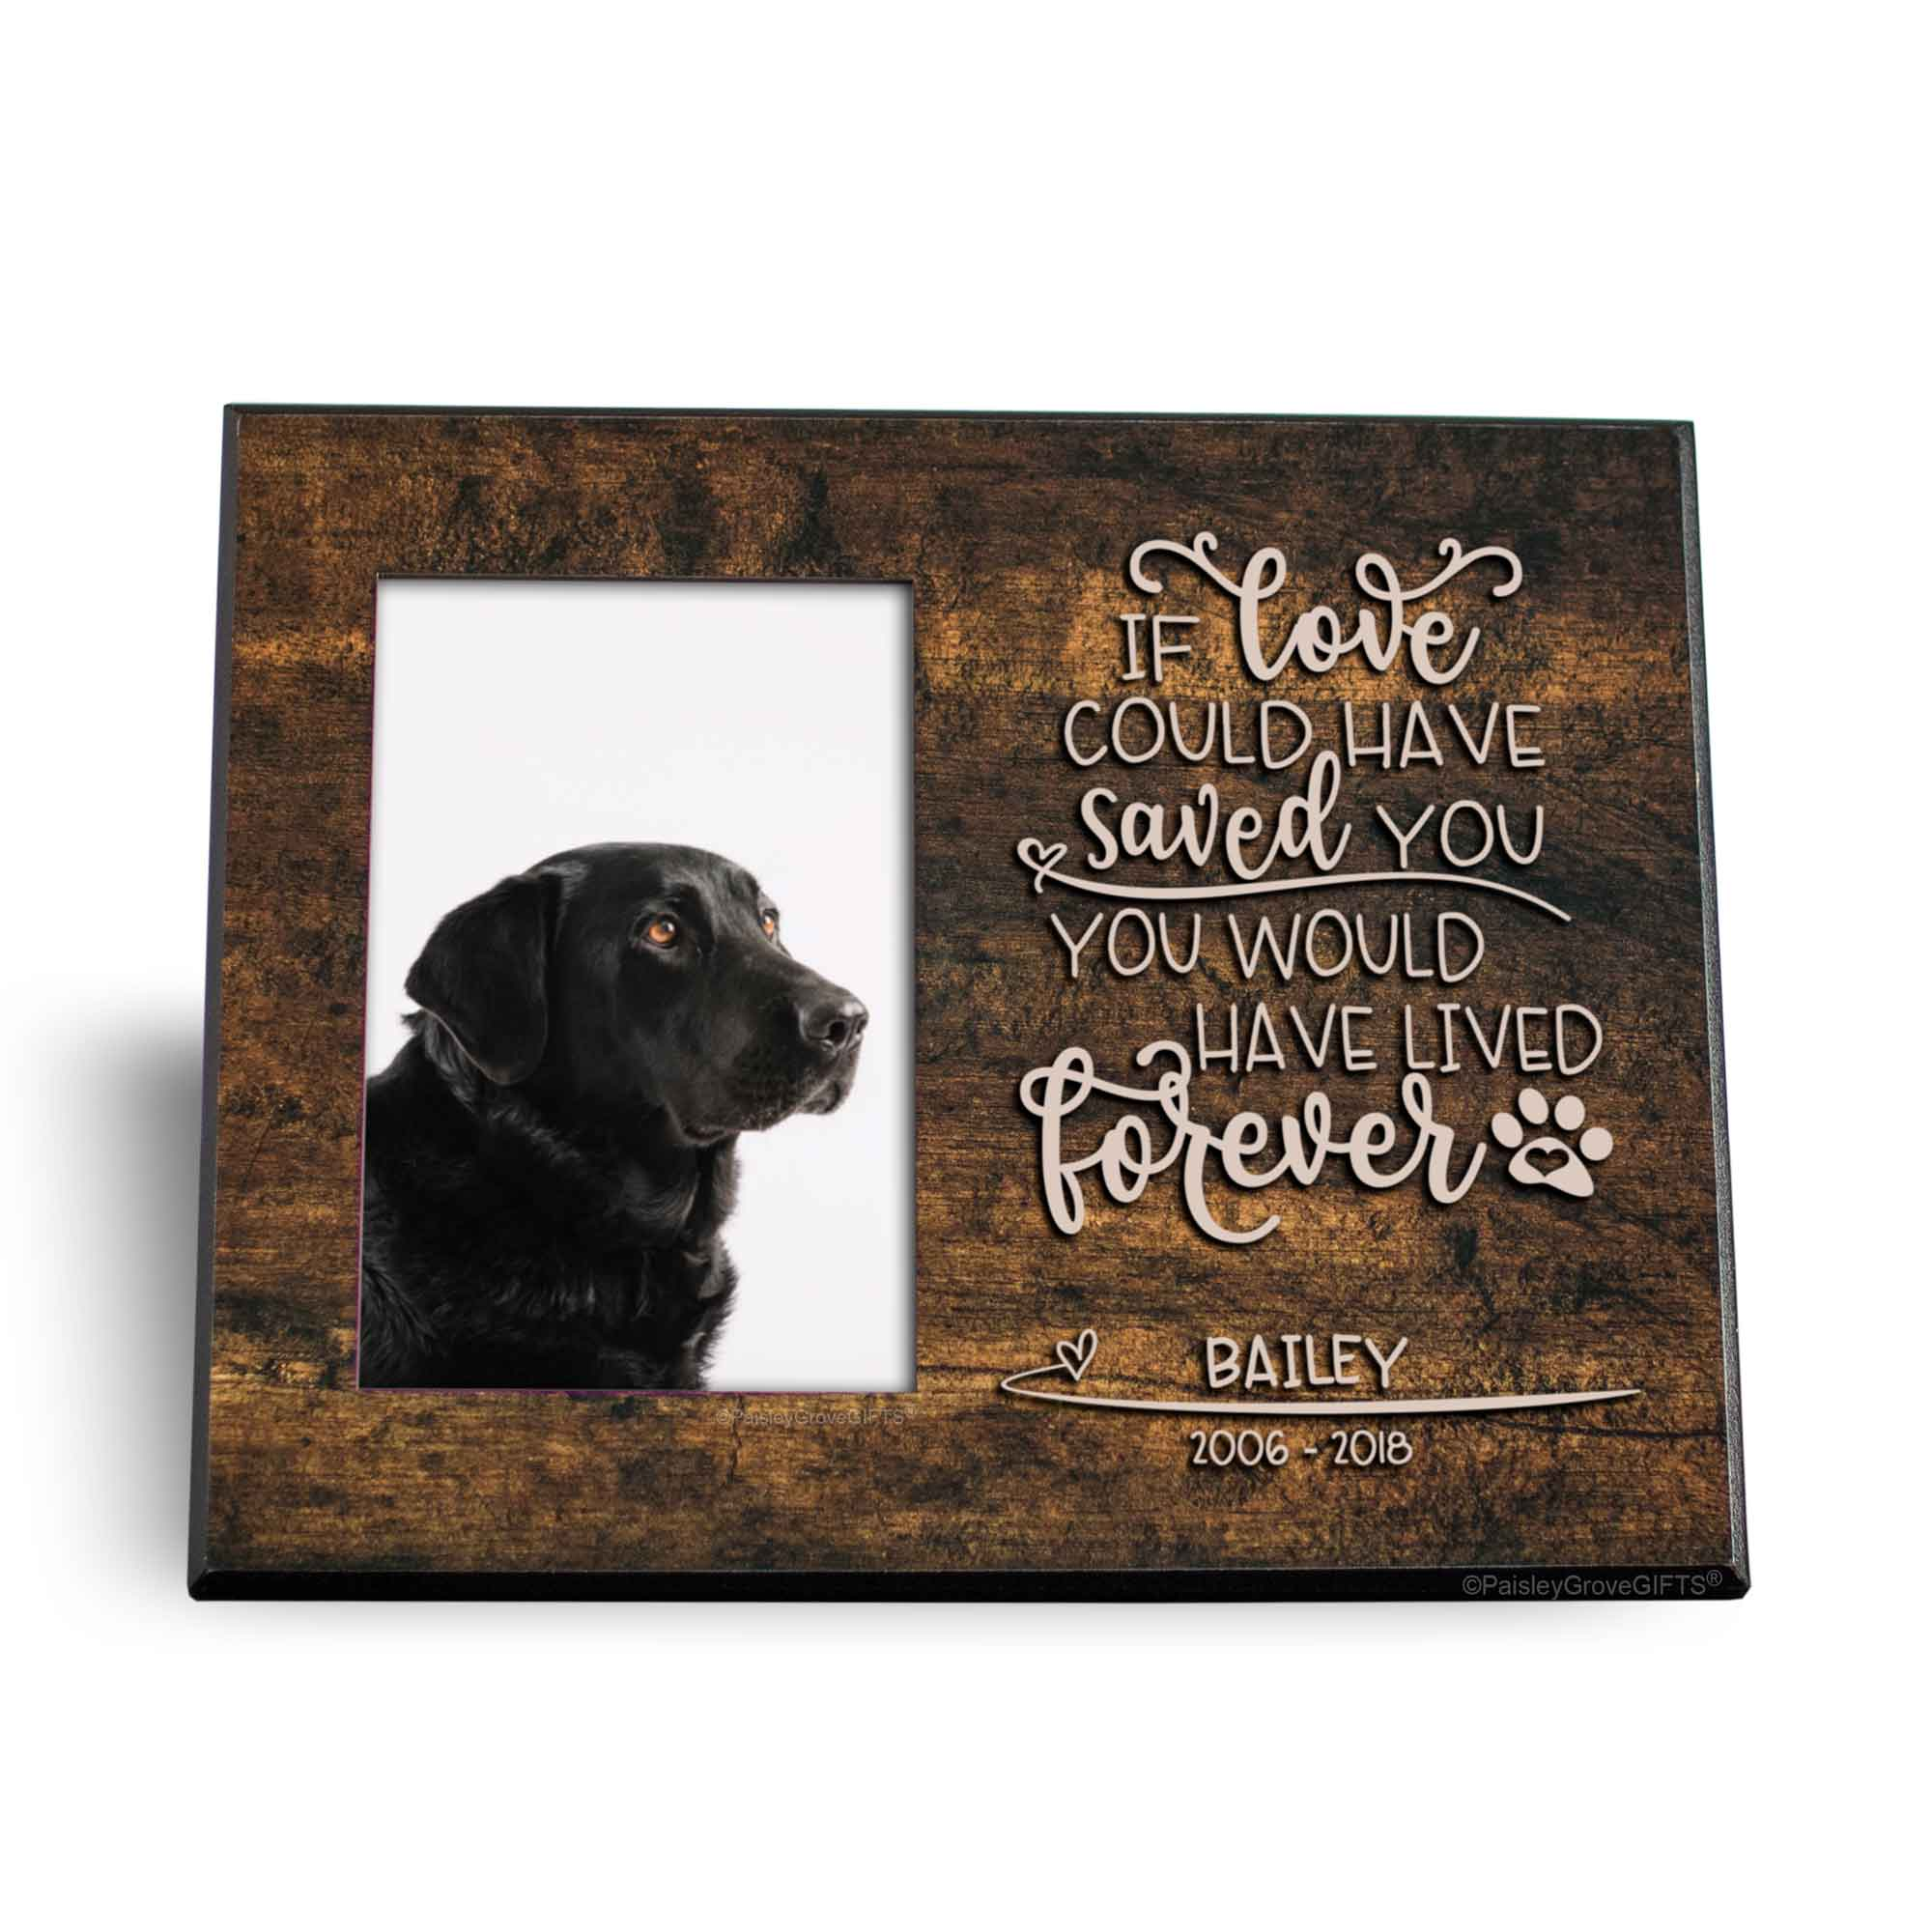 CopyrightPaisleyGroveGIFTS S280c Pet Memorial Keepsake Gift If Love Could've Saved You Quote on 8x10 inch frame